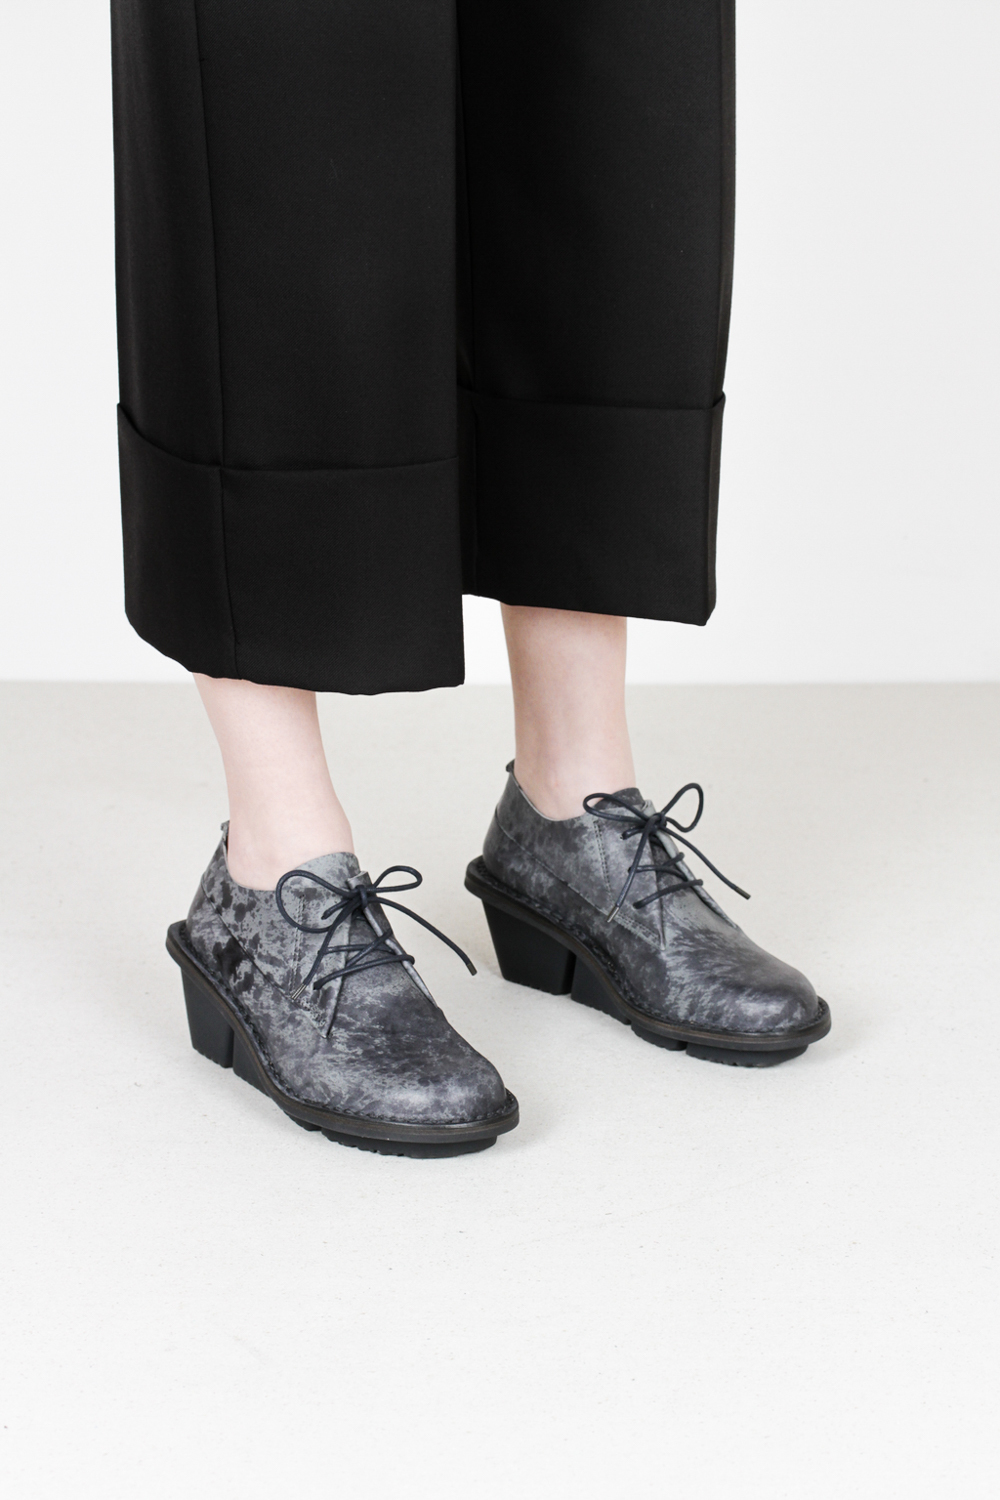 Trippen stone f cst grey ash leather shoes